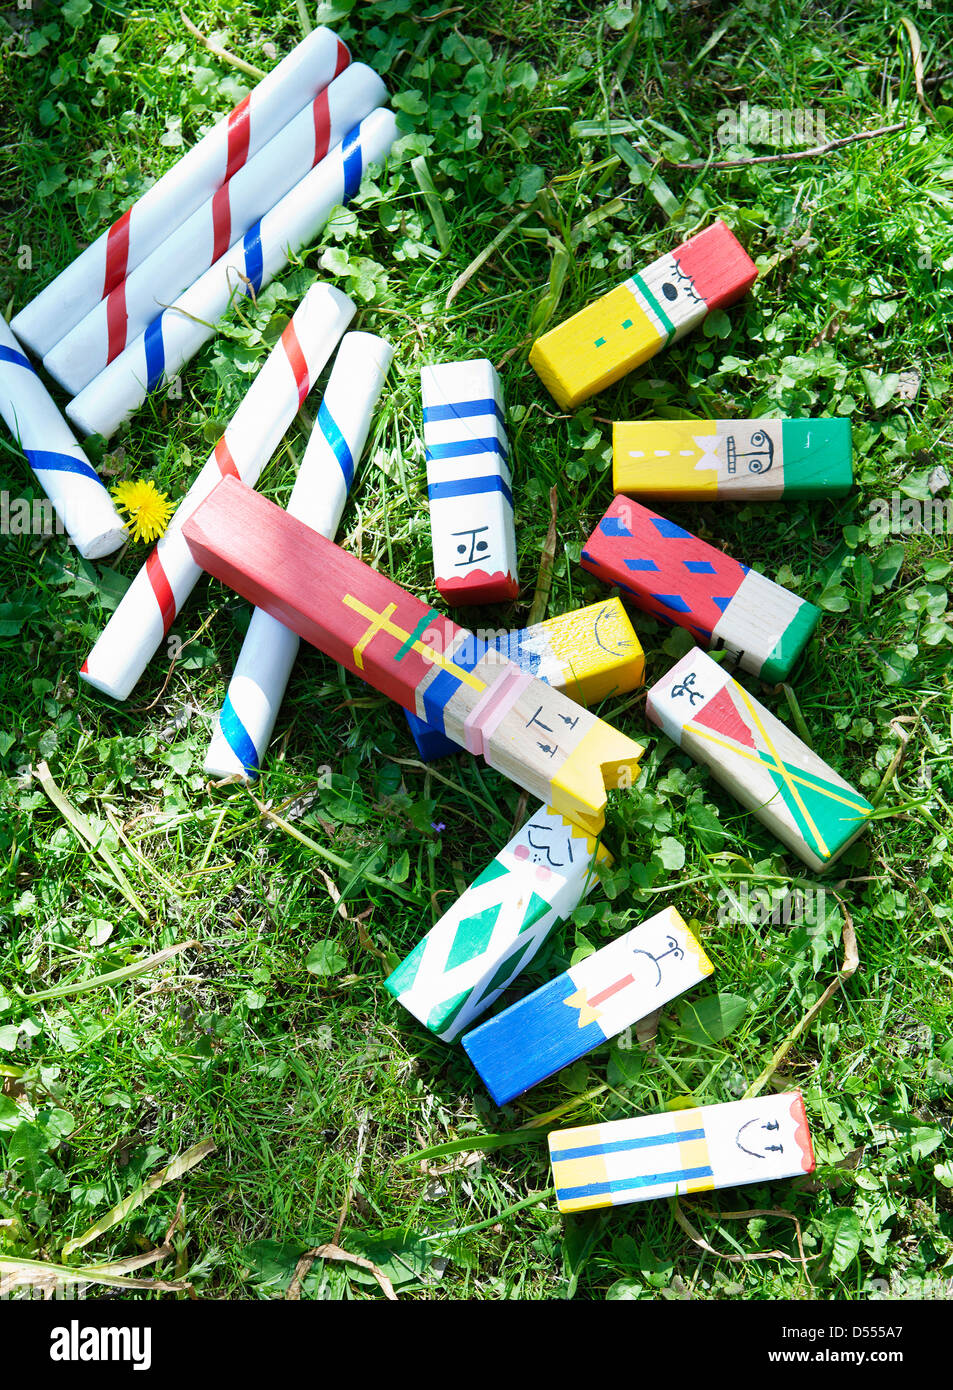 Homemade toys in grass - Stock Image